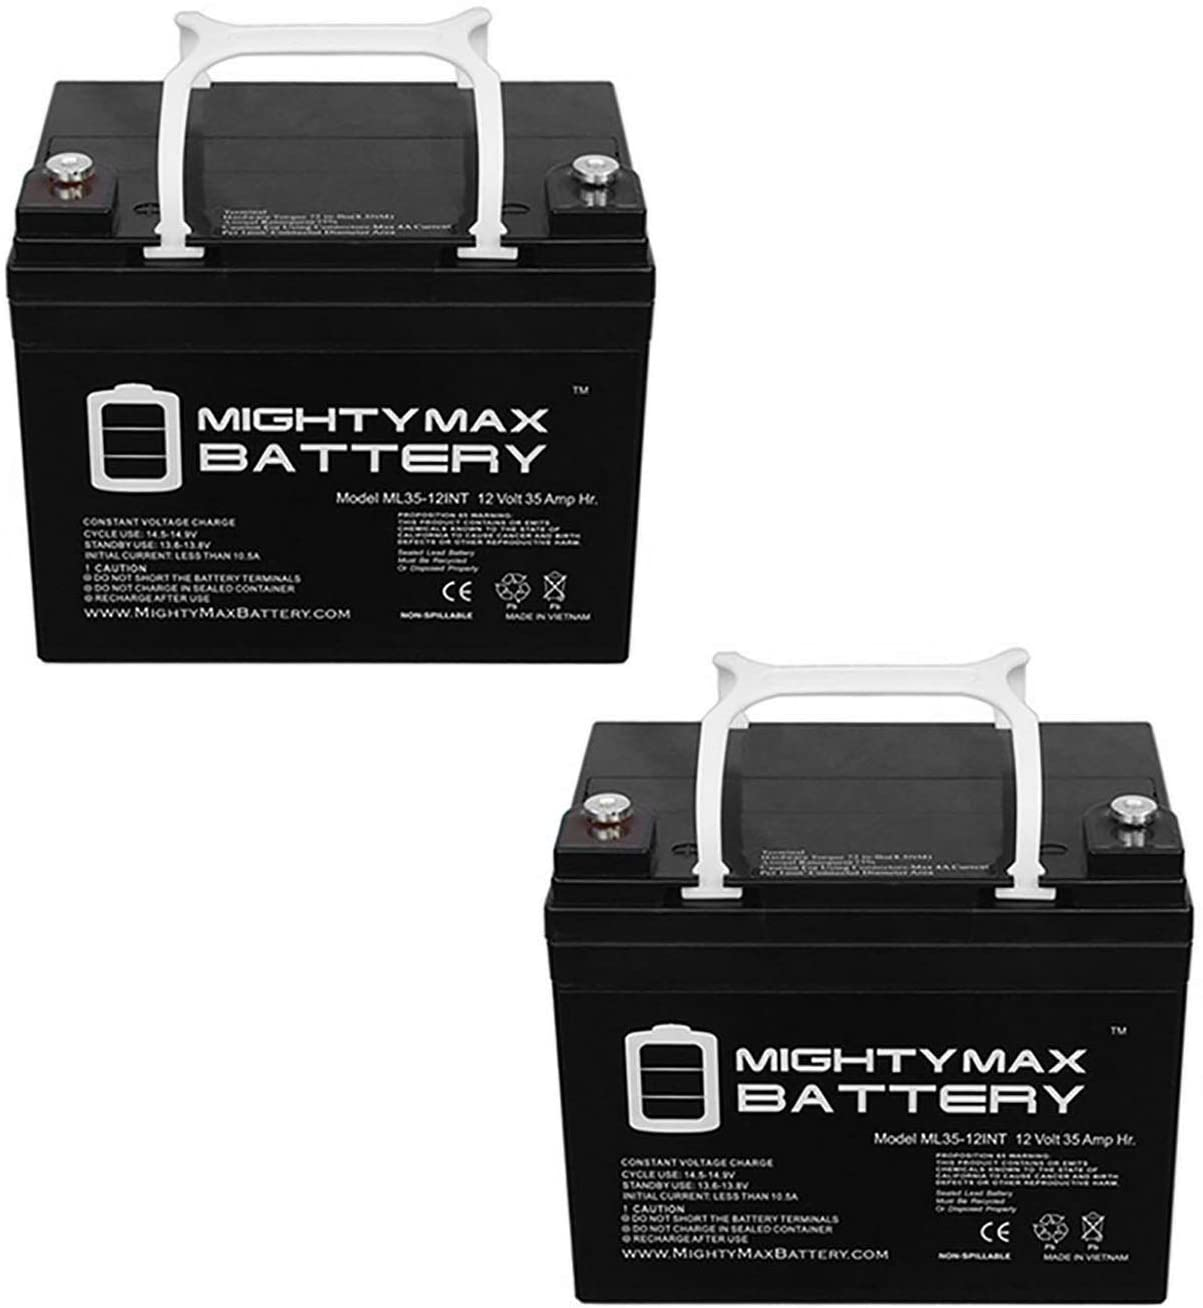 Mighty Max Battery mart 12V 35AH INT Replaces SLA C.T.M. Mobi New Shipping Free Shipping